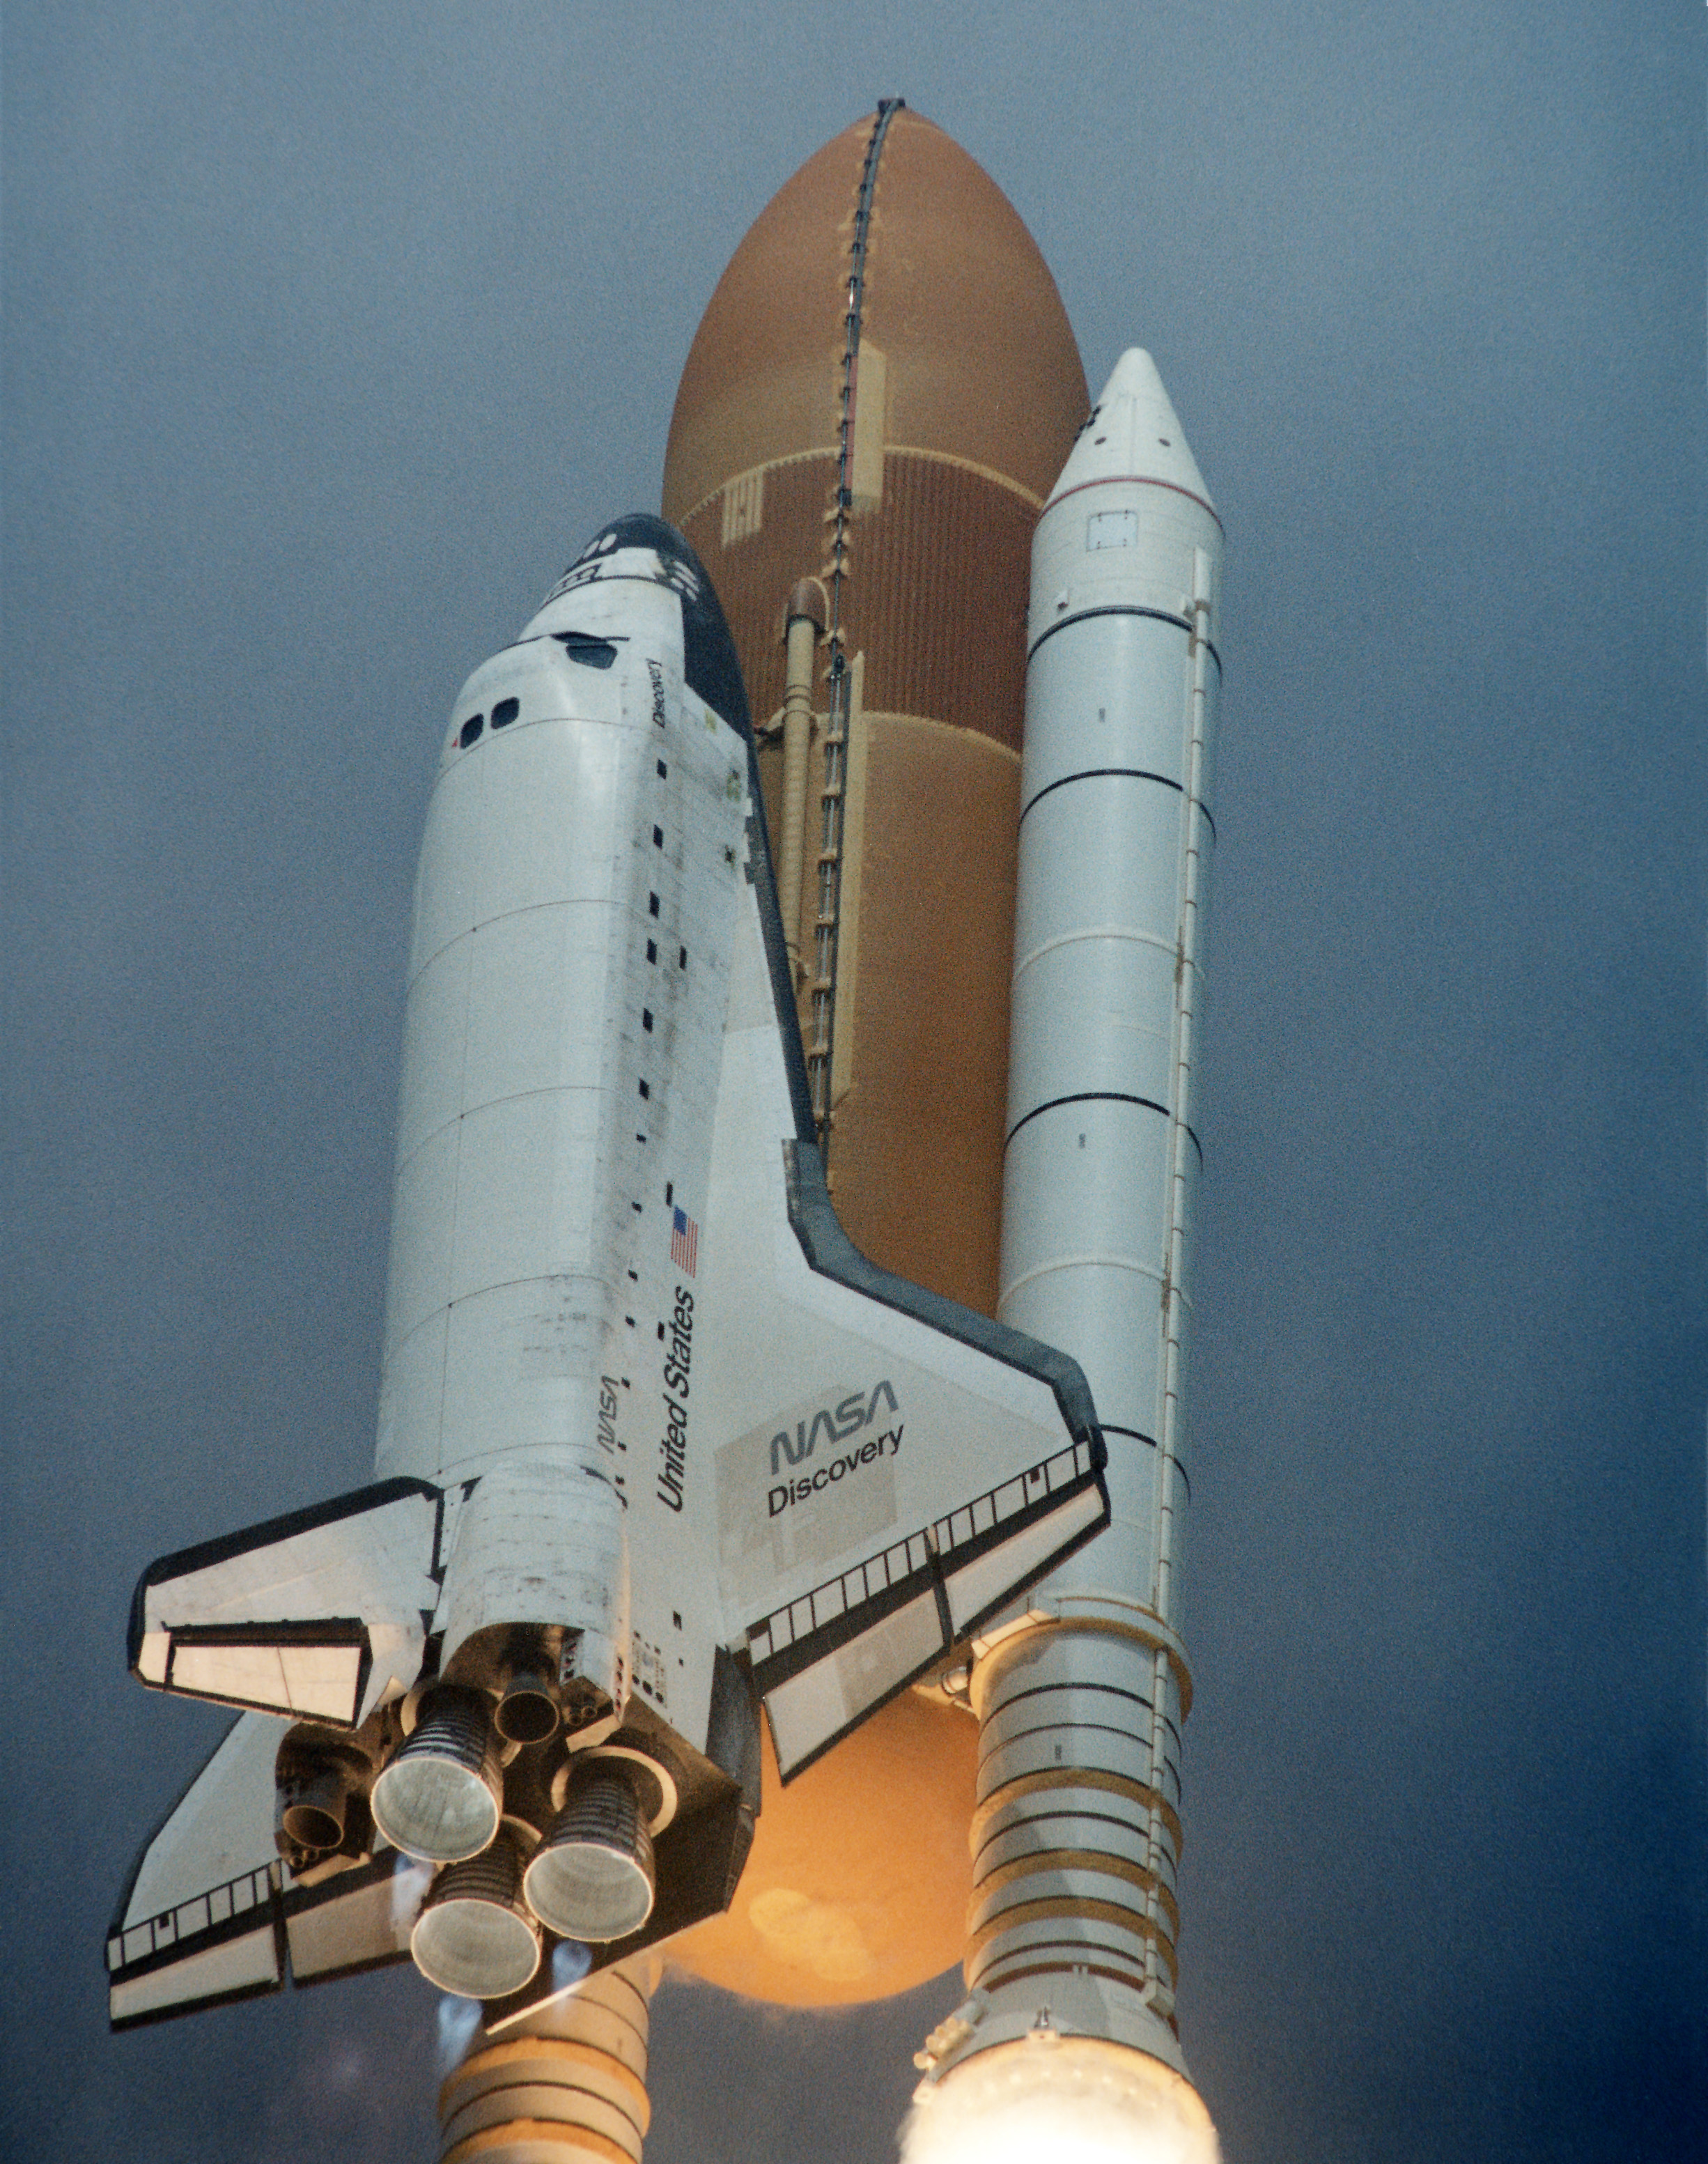 Space Shuttle Discovery Launch - Canadian Space Agency